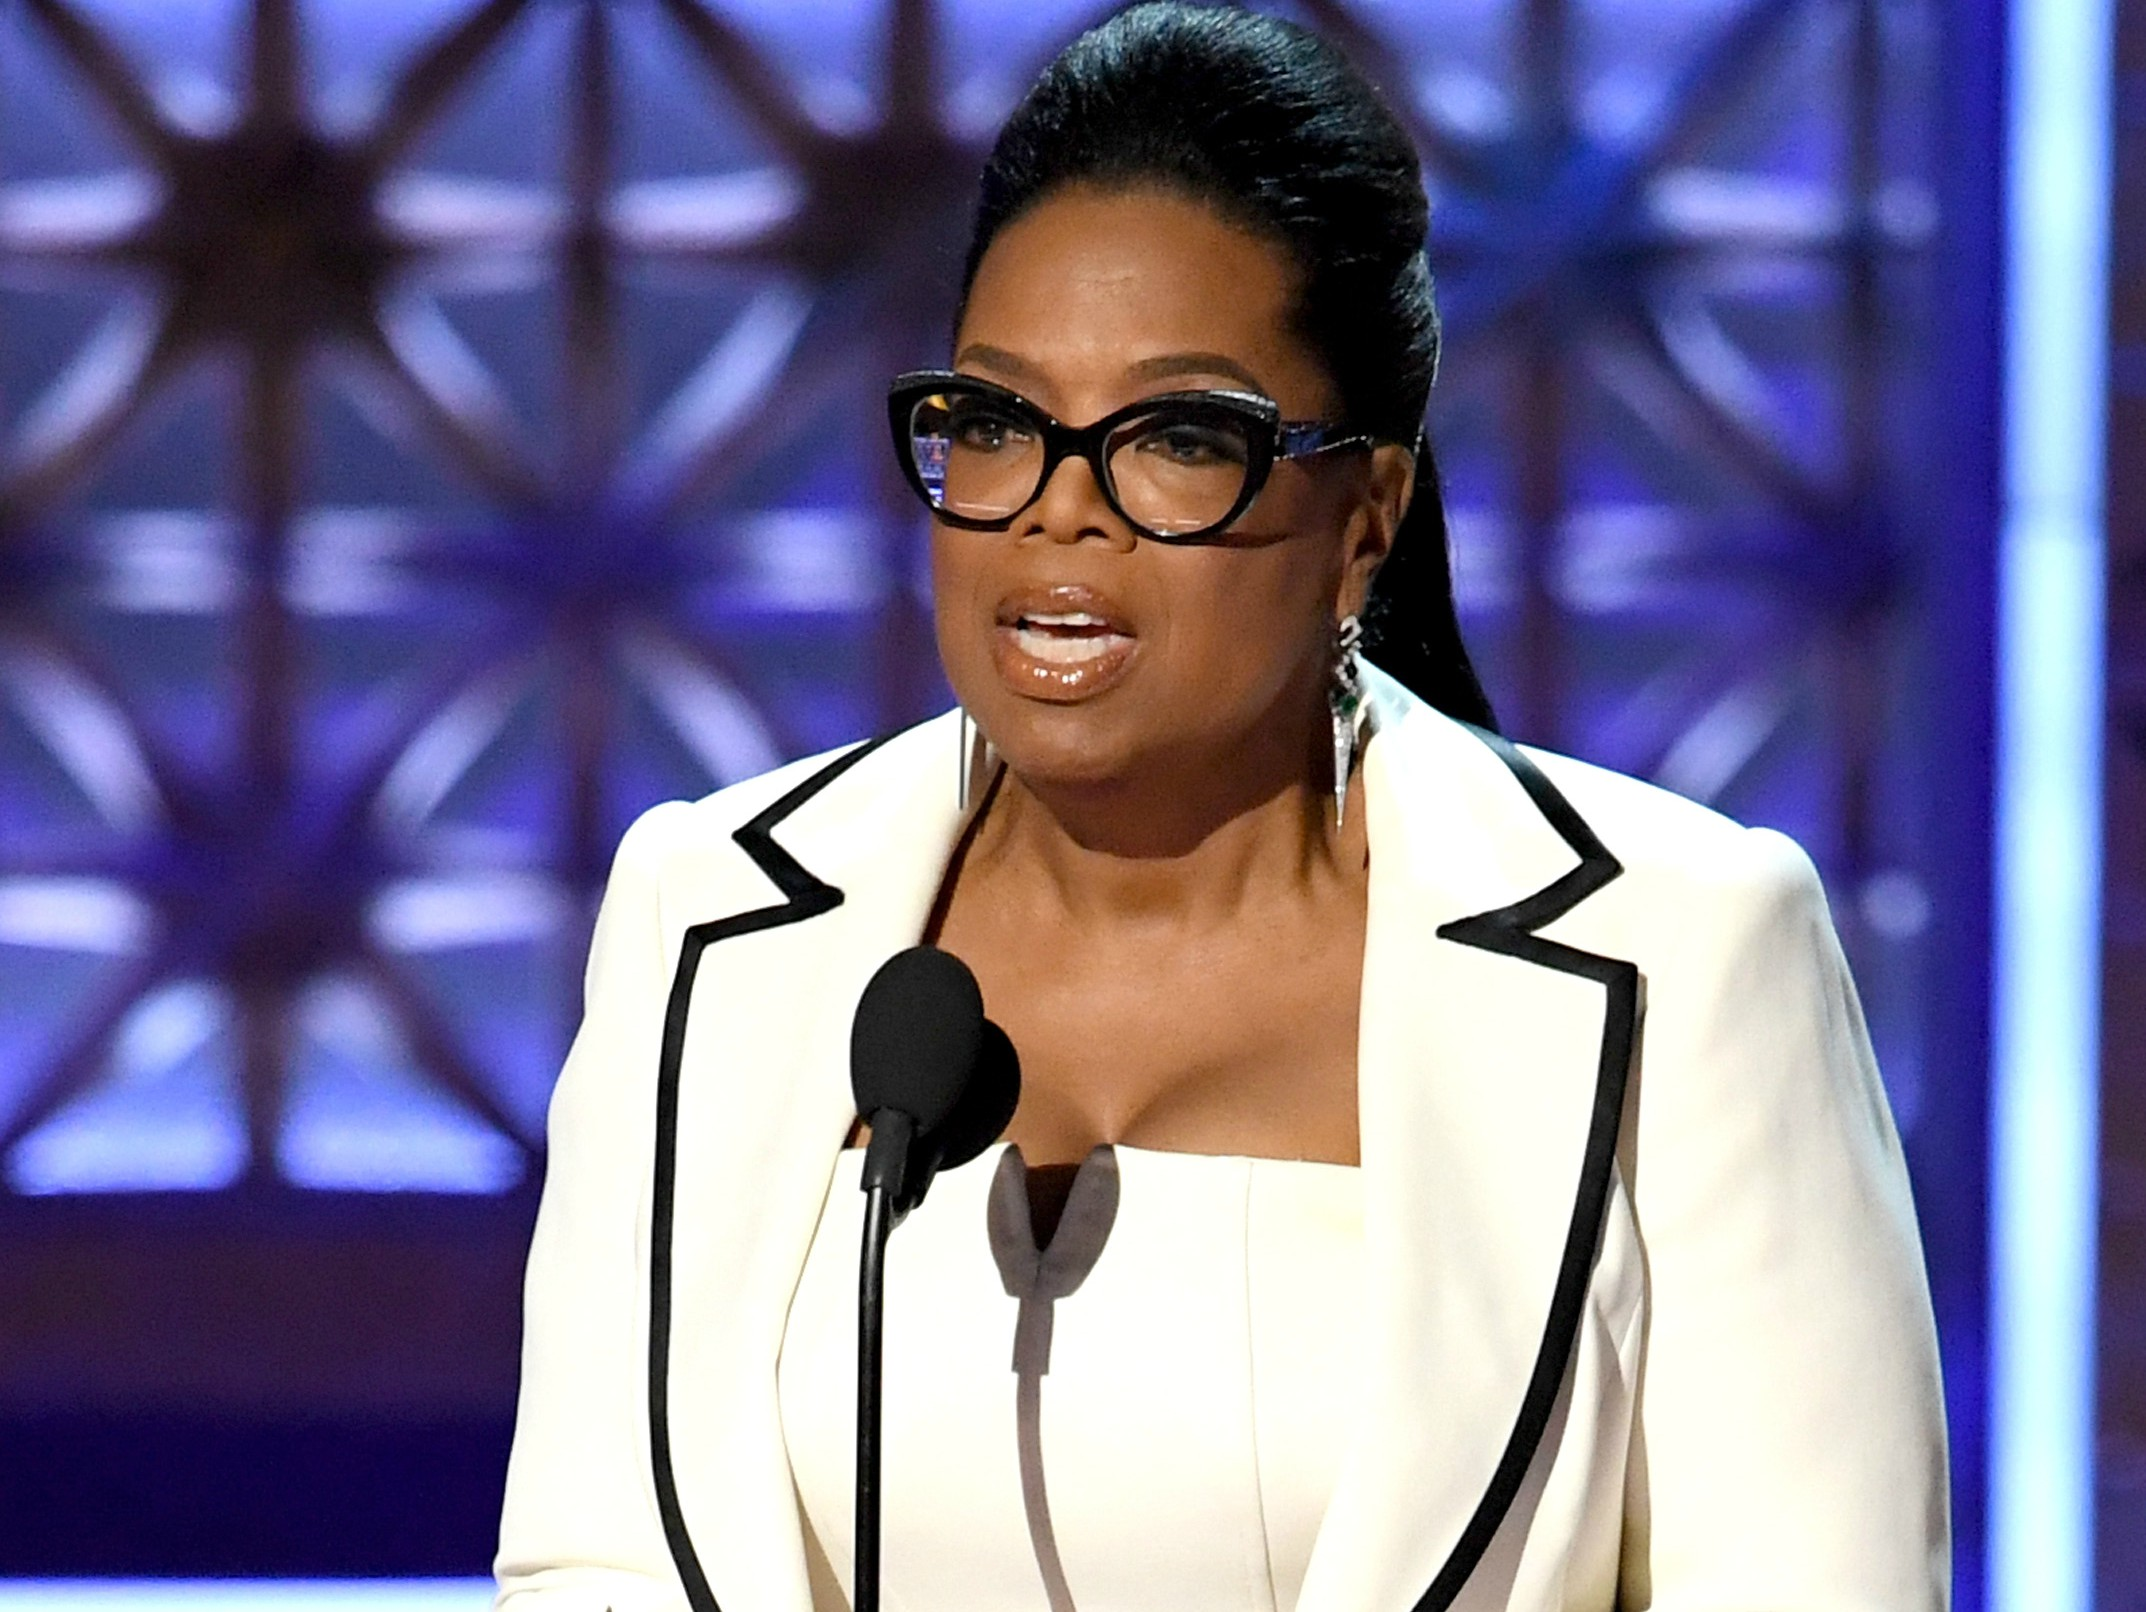 Oprah Winfrey alerts fans to financial scam: 'Don't believe it'